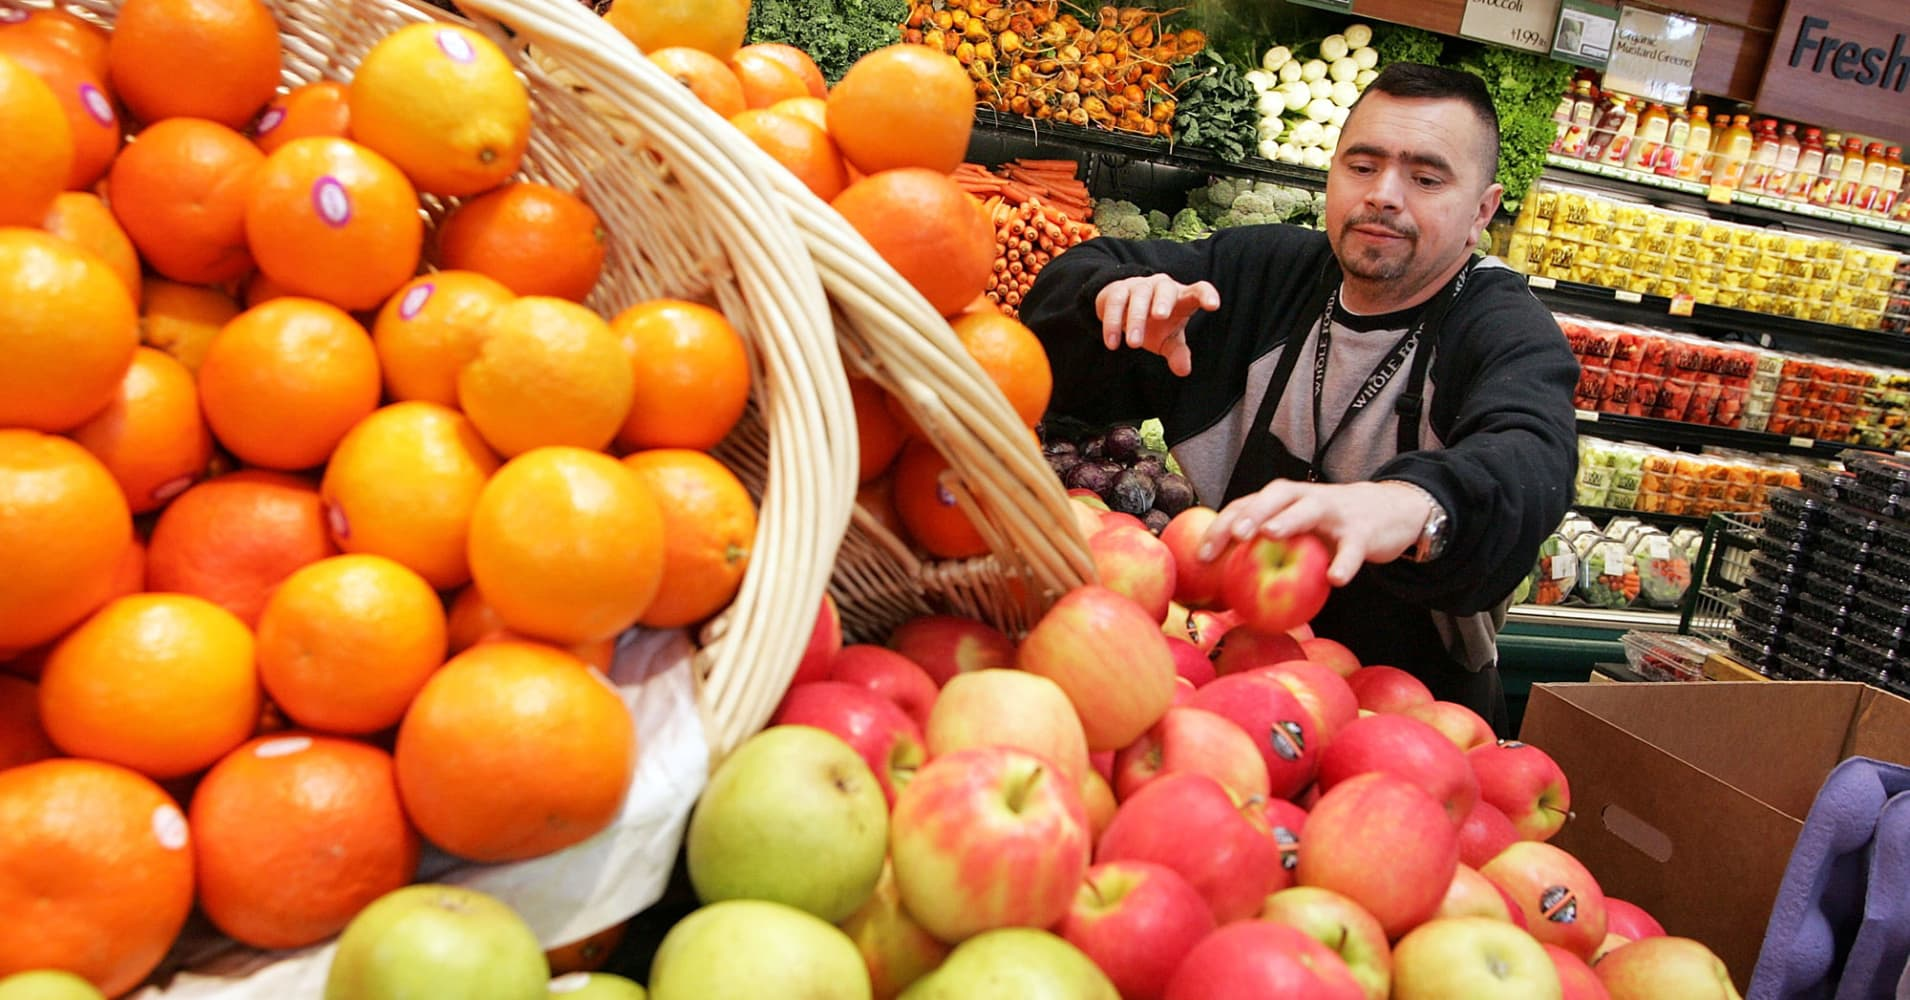 WHOLE FOODS calls meeting with vendors as tensions flare